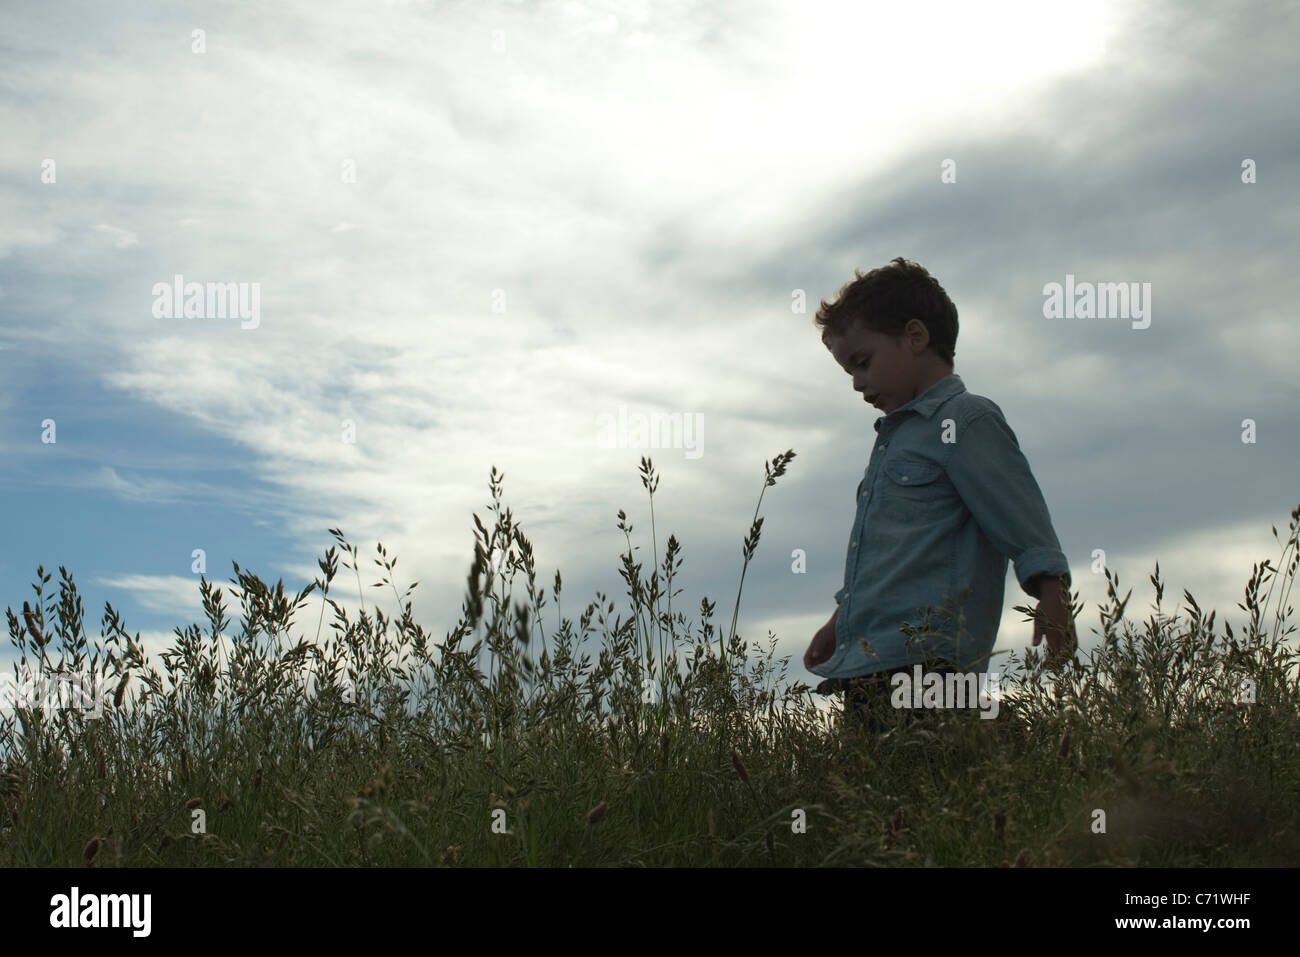 Boy walking through tall grass - Stock Image